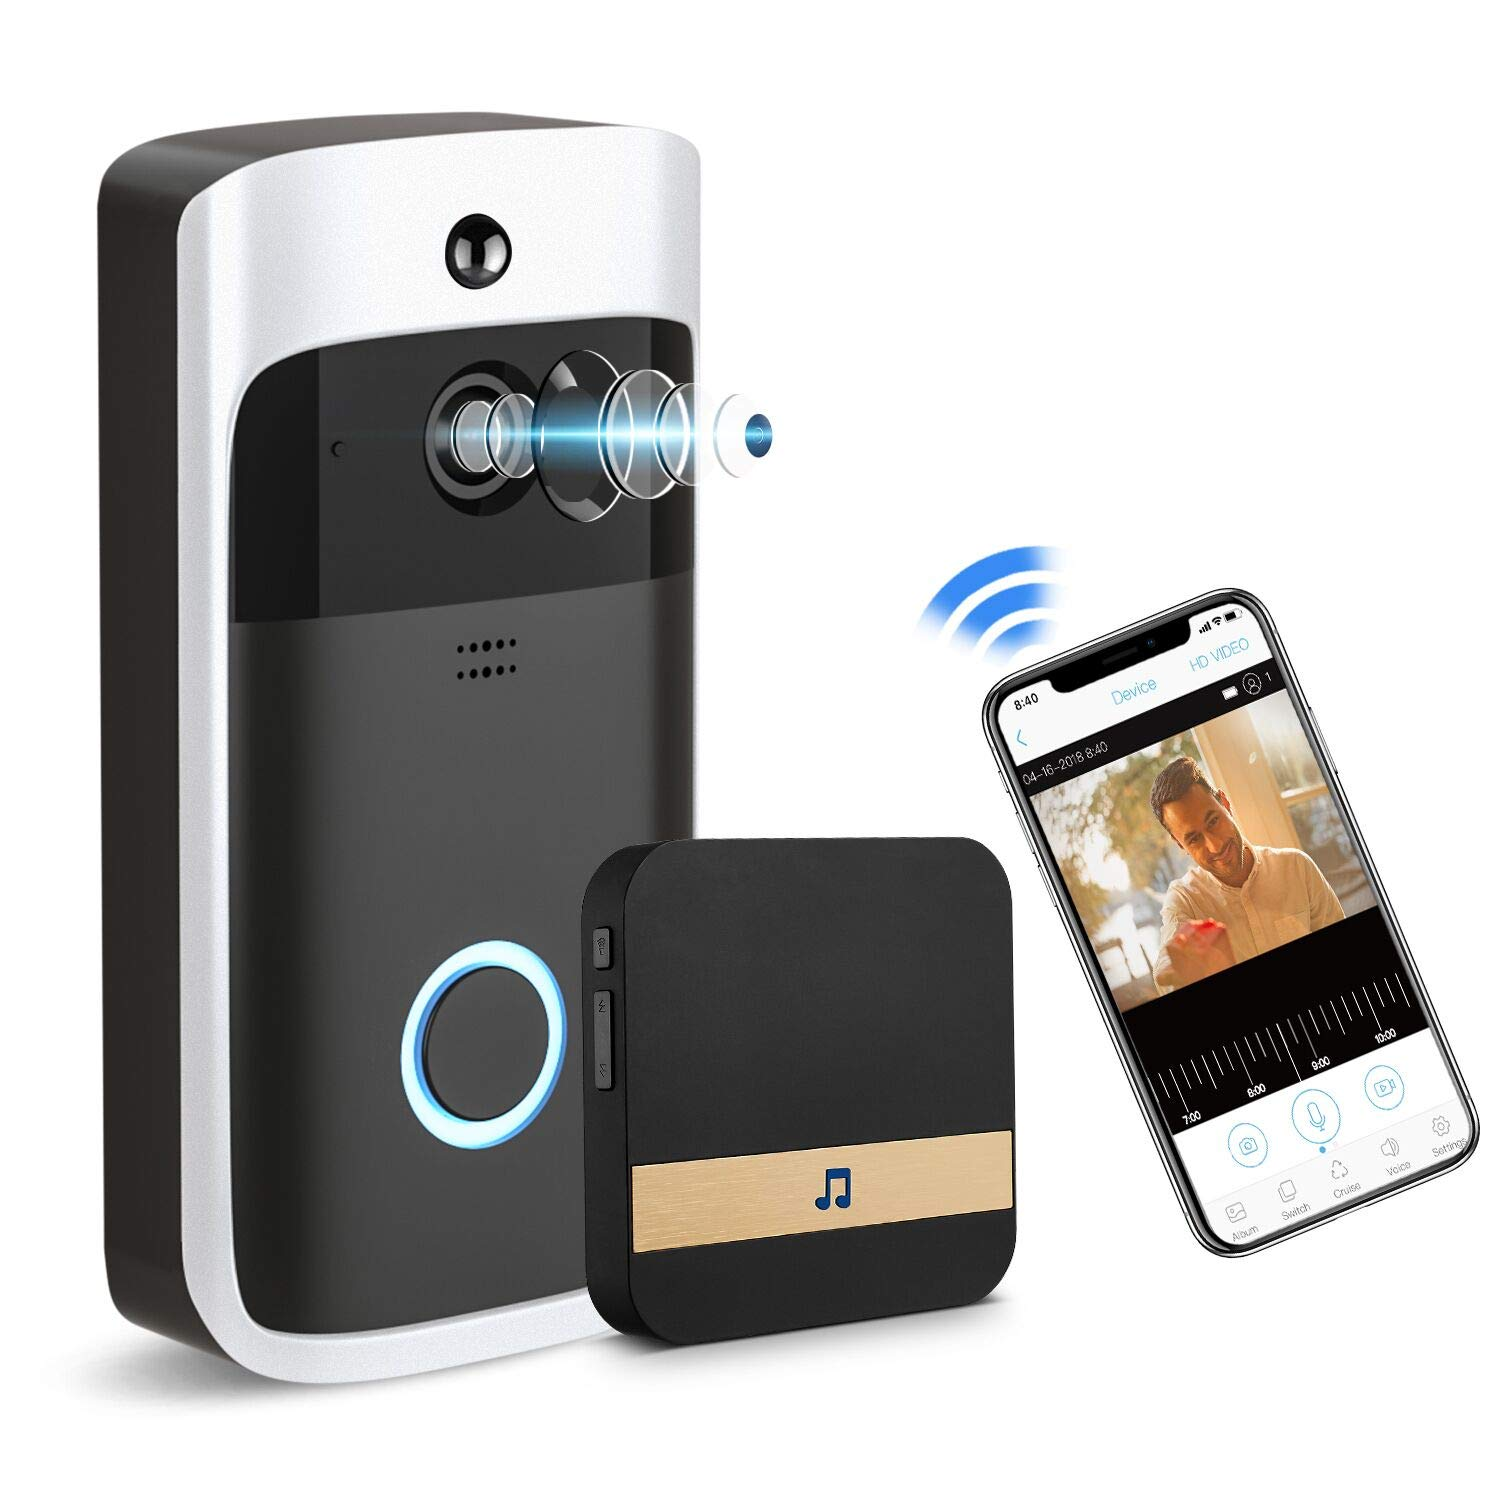 GJT Smart Video Doorbell Wireless Home WIFI Security Camera With Indoor Chime, 8G SD Card, Free Cloud Service, 2 Batteries, 2-Way Talk, Night Vision, PIR Motion Detection, APP Control for IOS Android by GJT